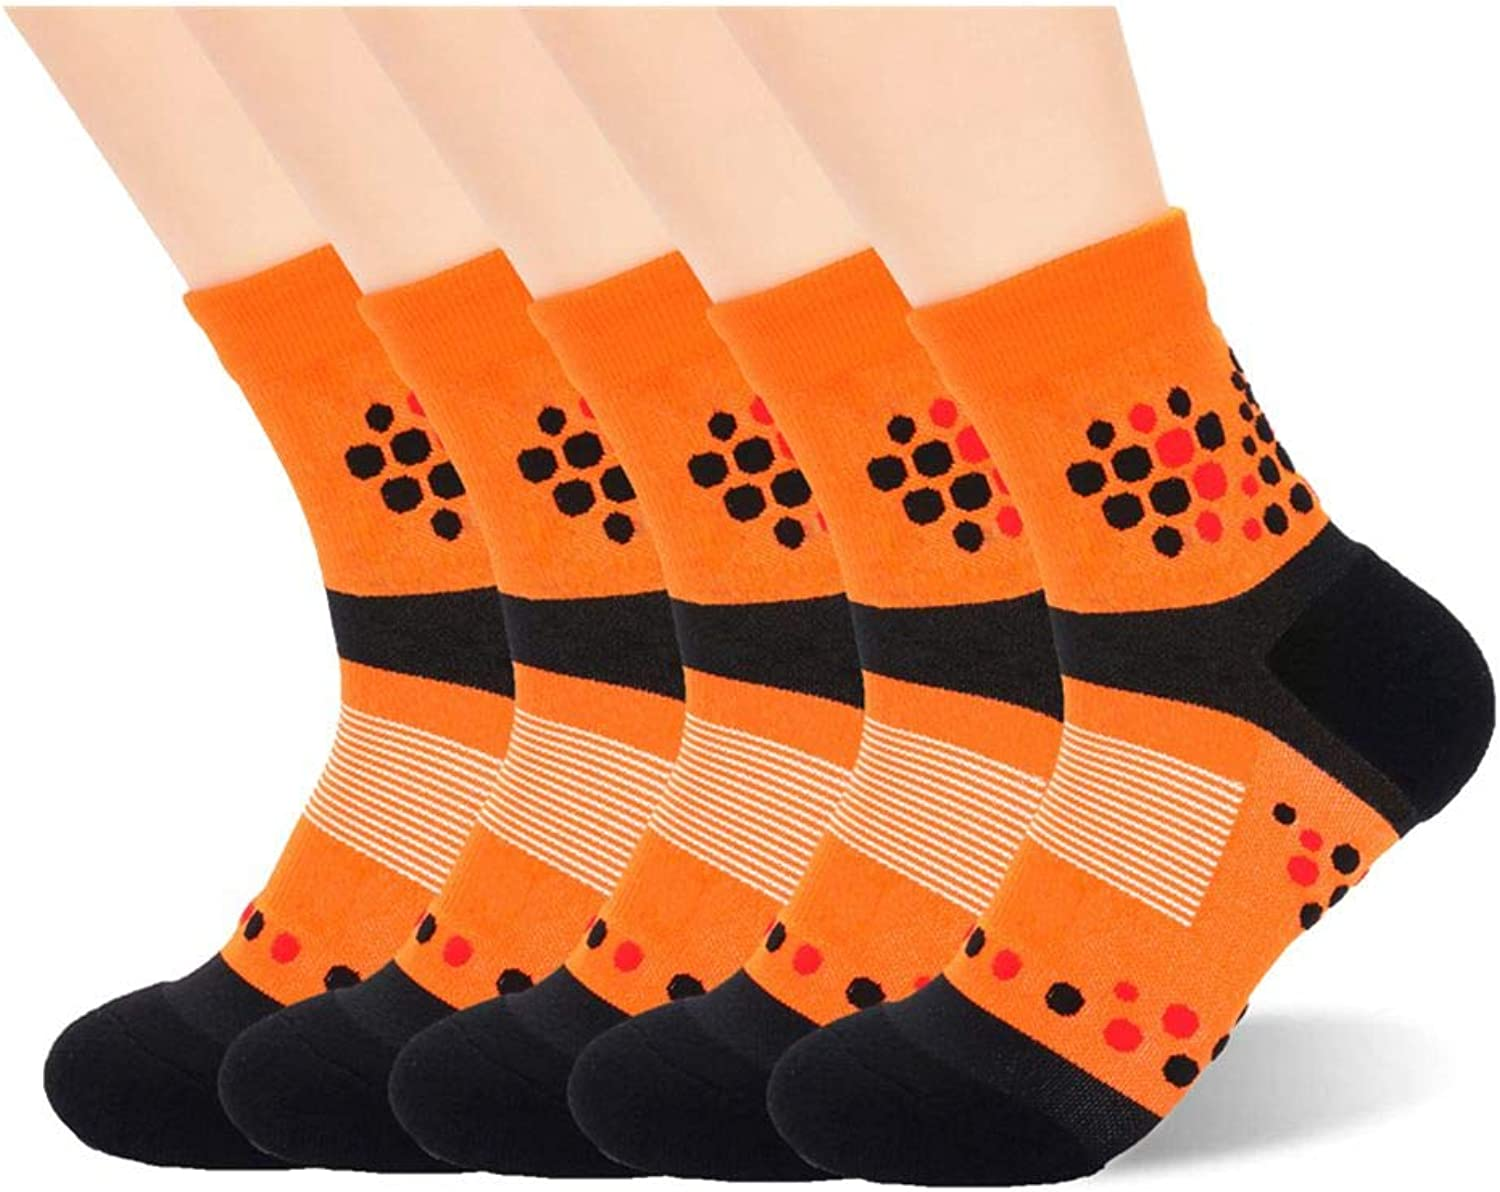 Copper Antibacterial Low Cut Athletic Ankle Quarter Socks for Mens and Womens